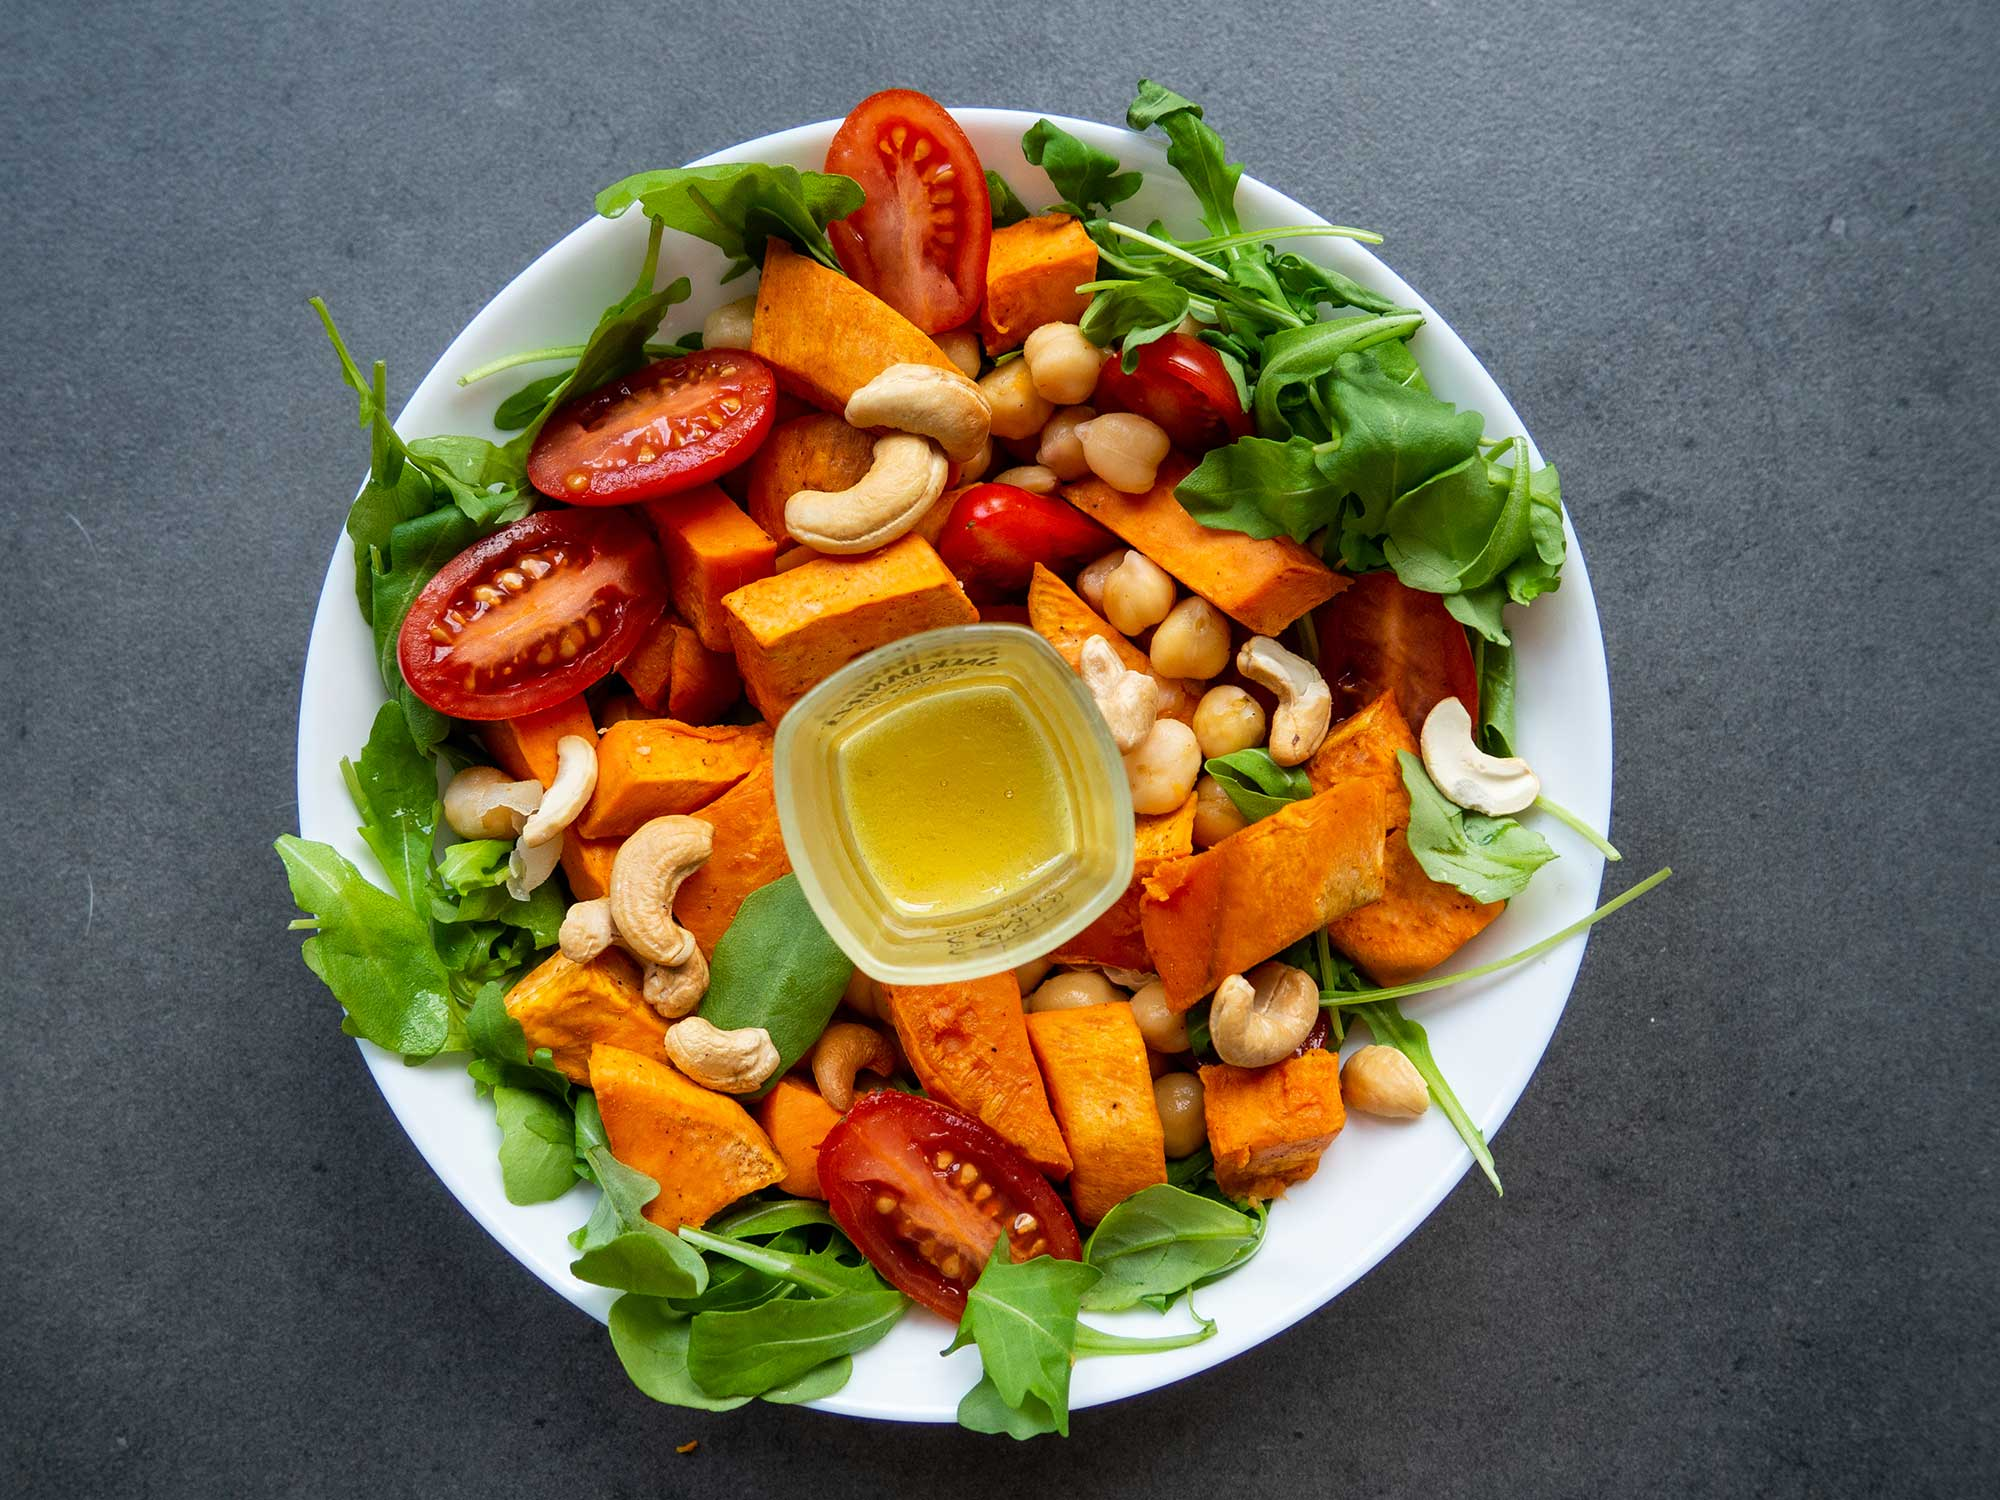 Salad with Sweet Potatoes, Chickpeas and Cashews